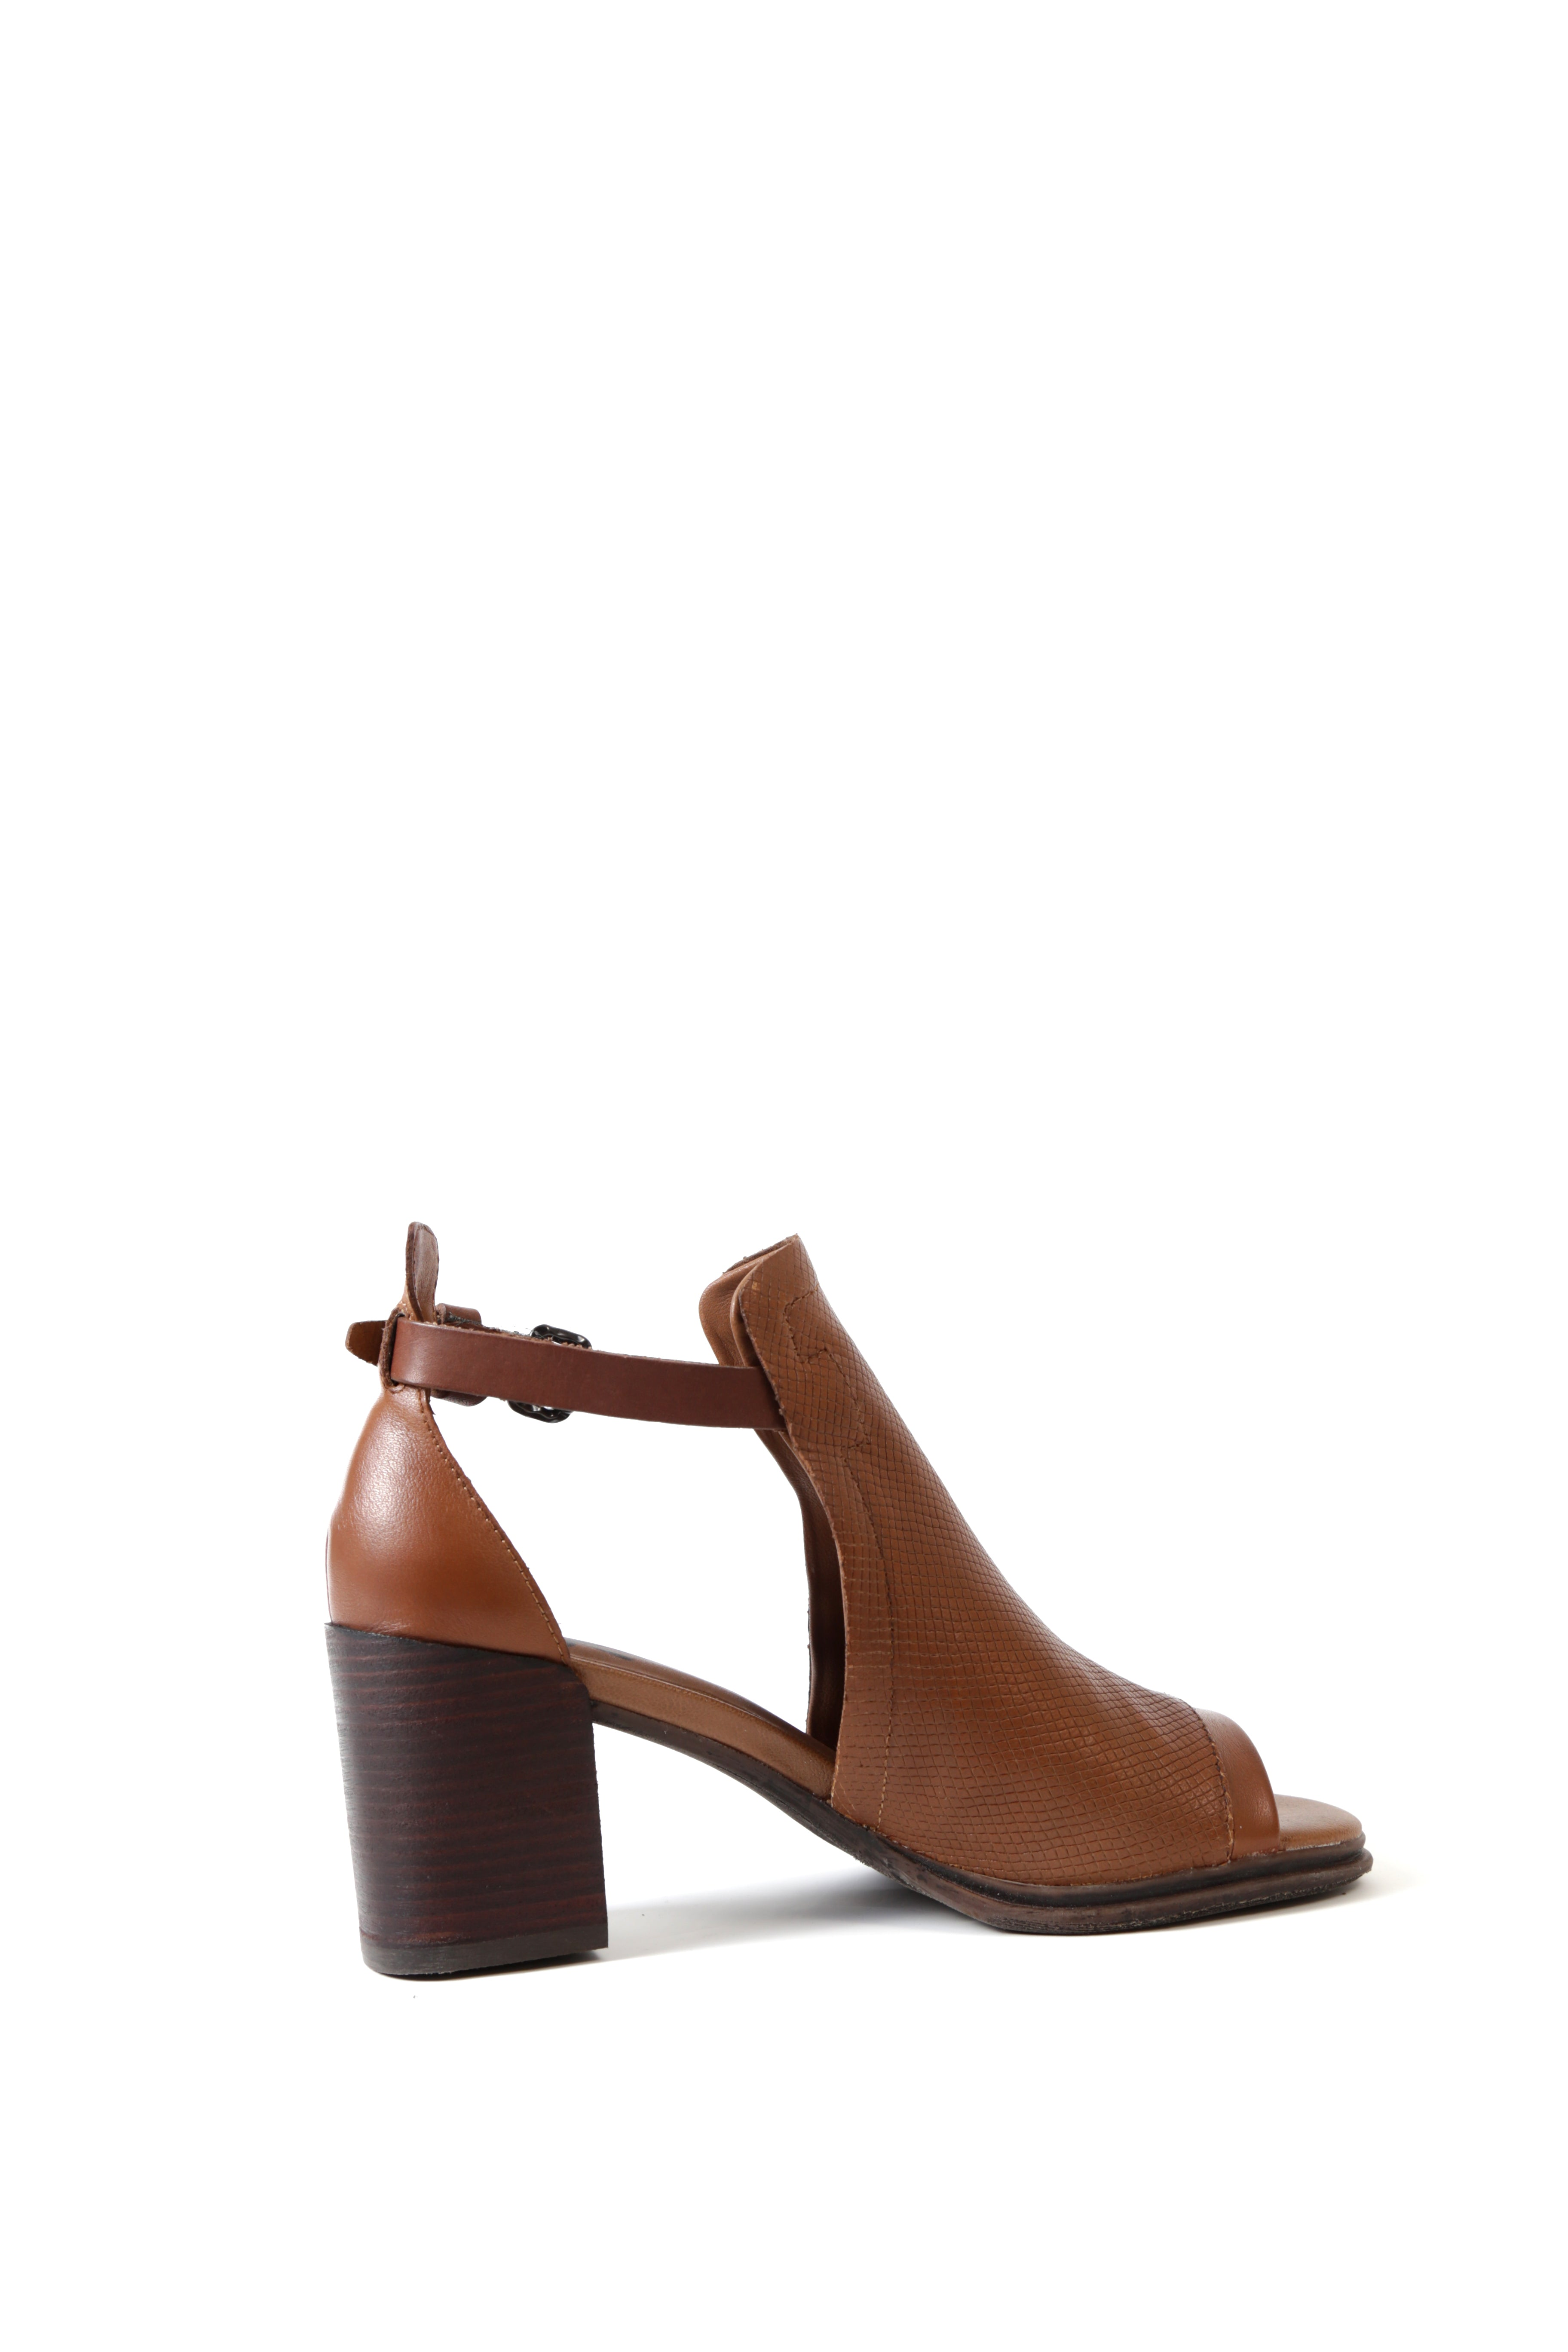 Metaphor Textured Sandal, Brown